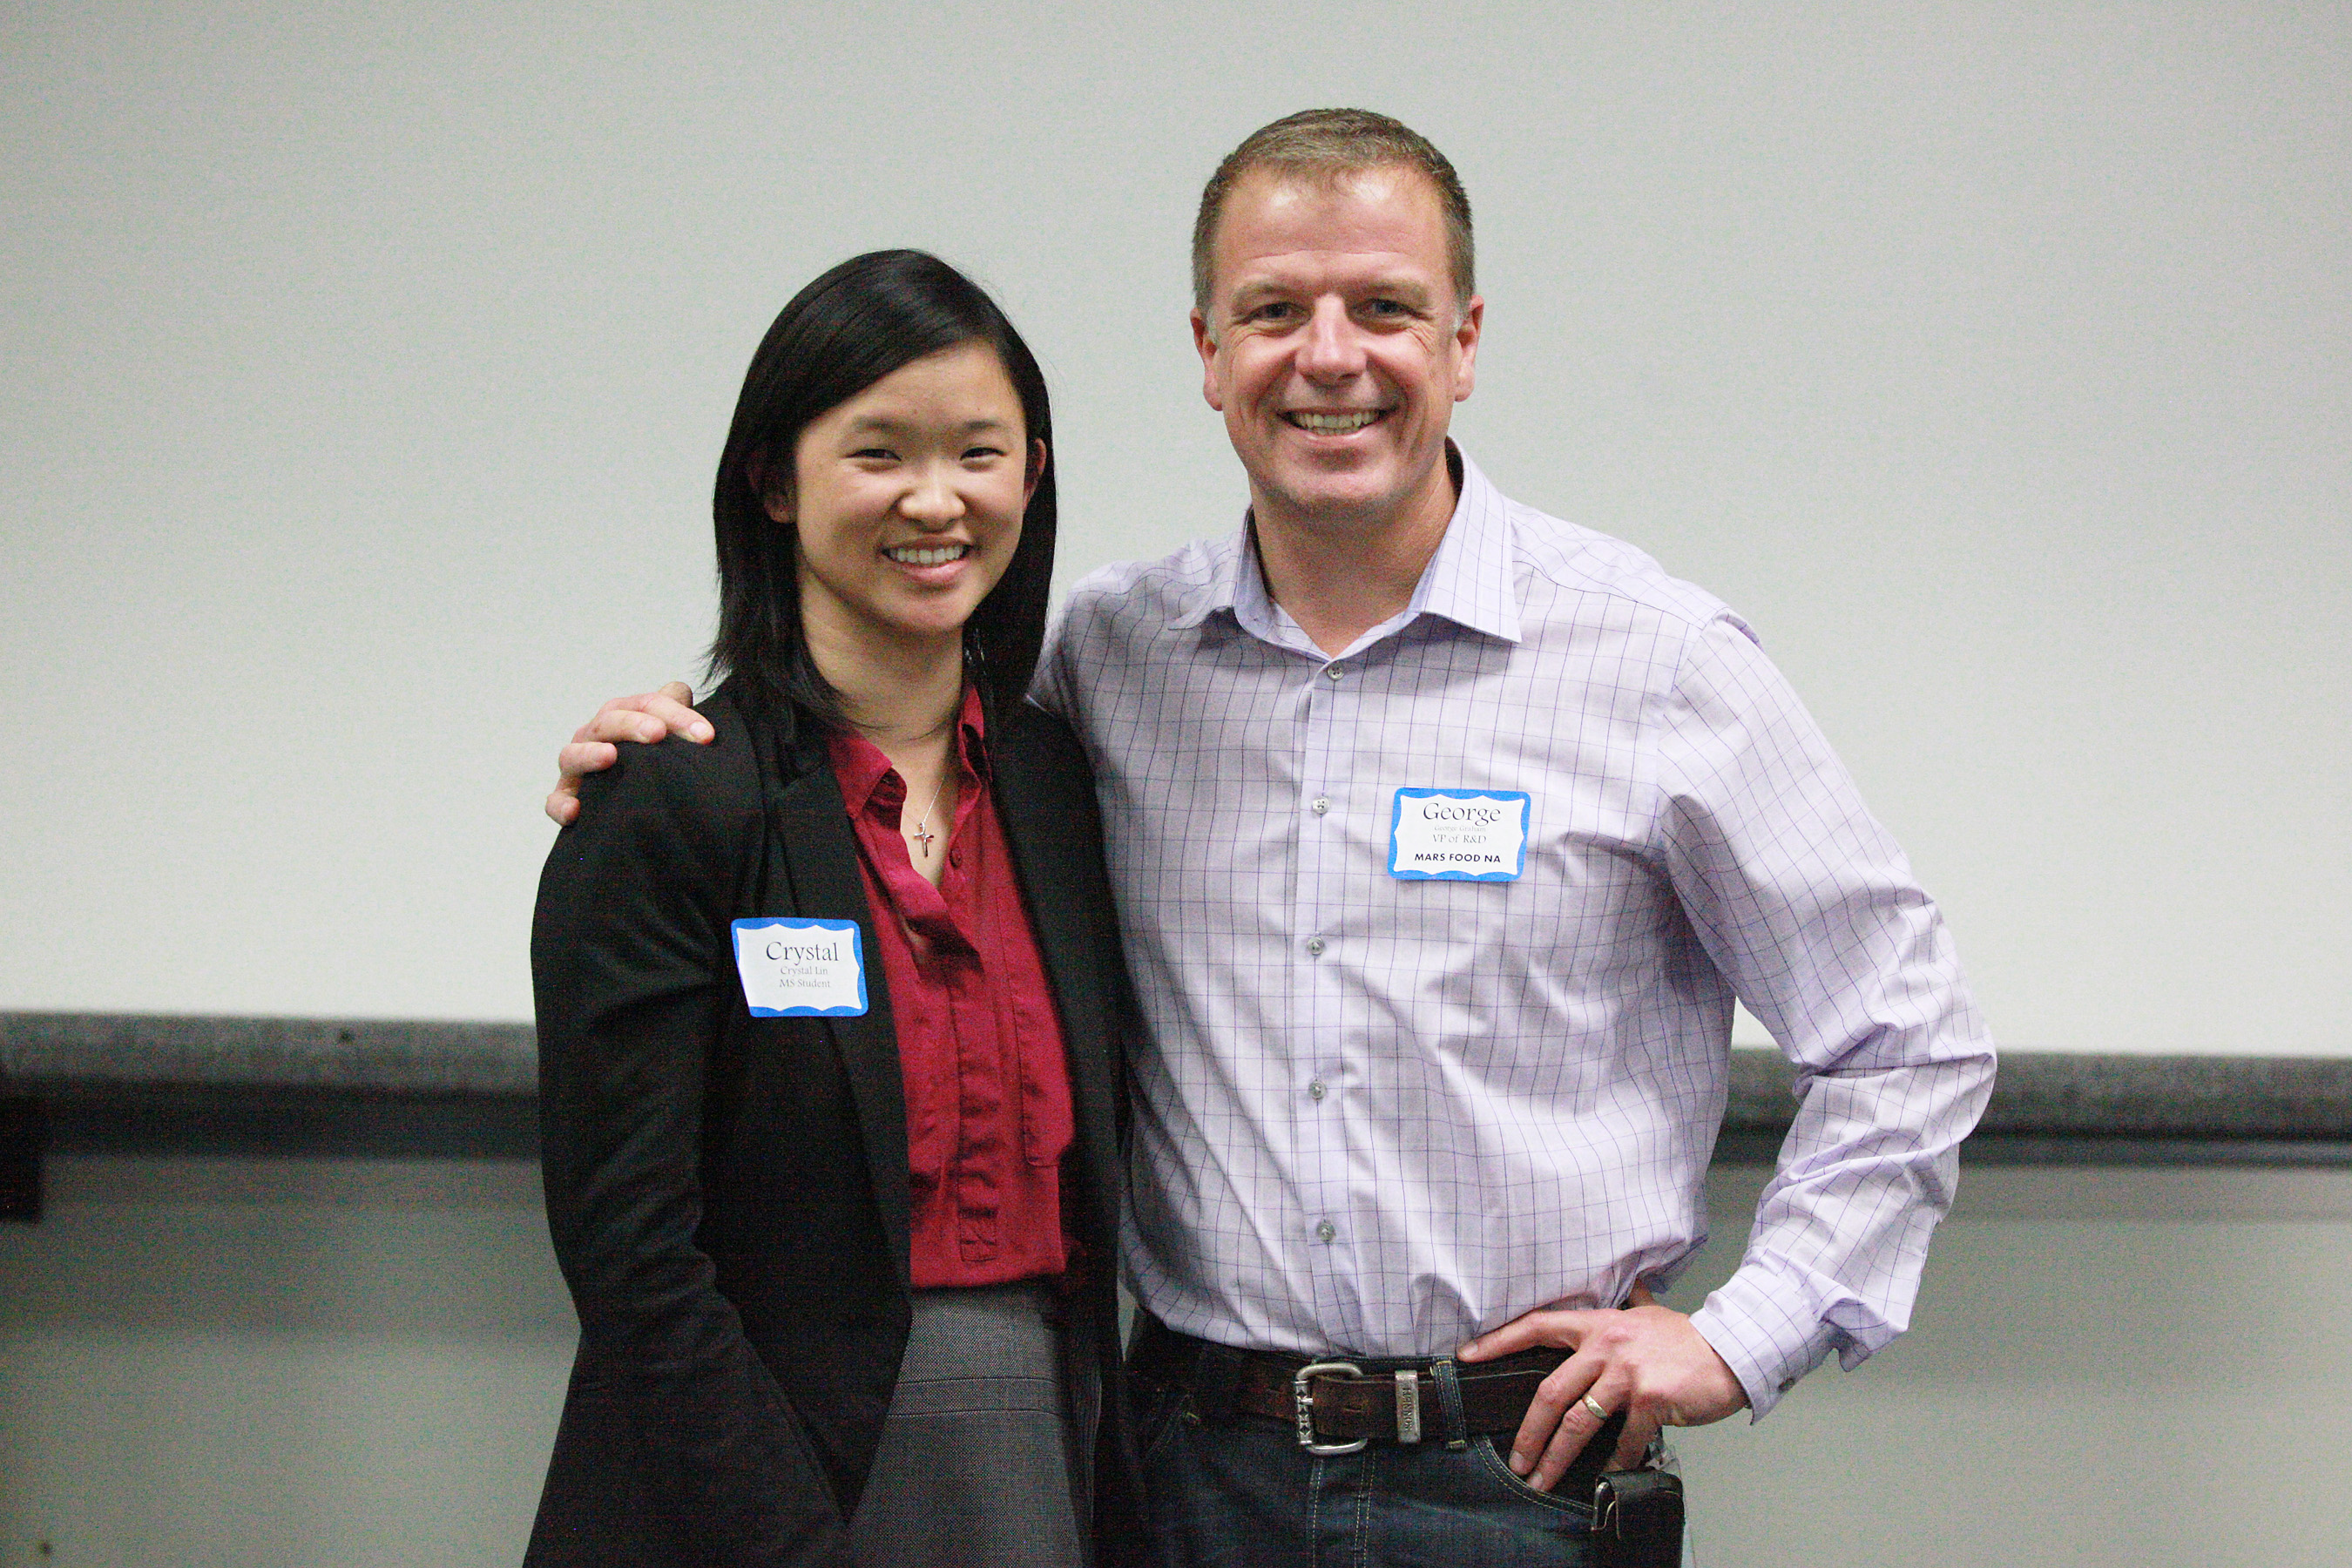 Crystal Lin and George Graham, VP of Research and Development for Mars Food NA, invited to speak about how networking has helped him advance his career.